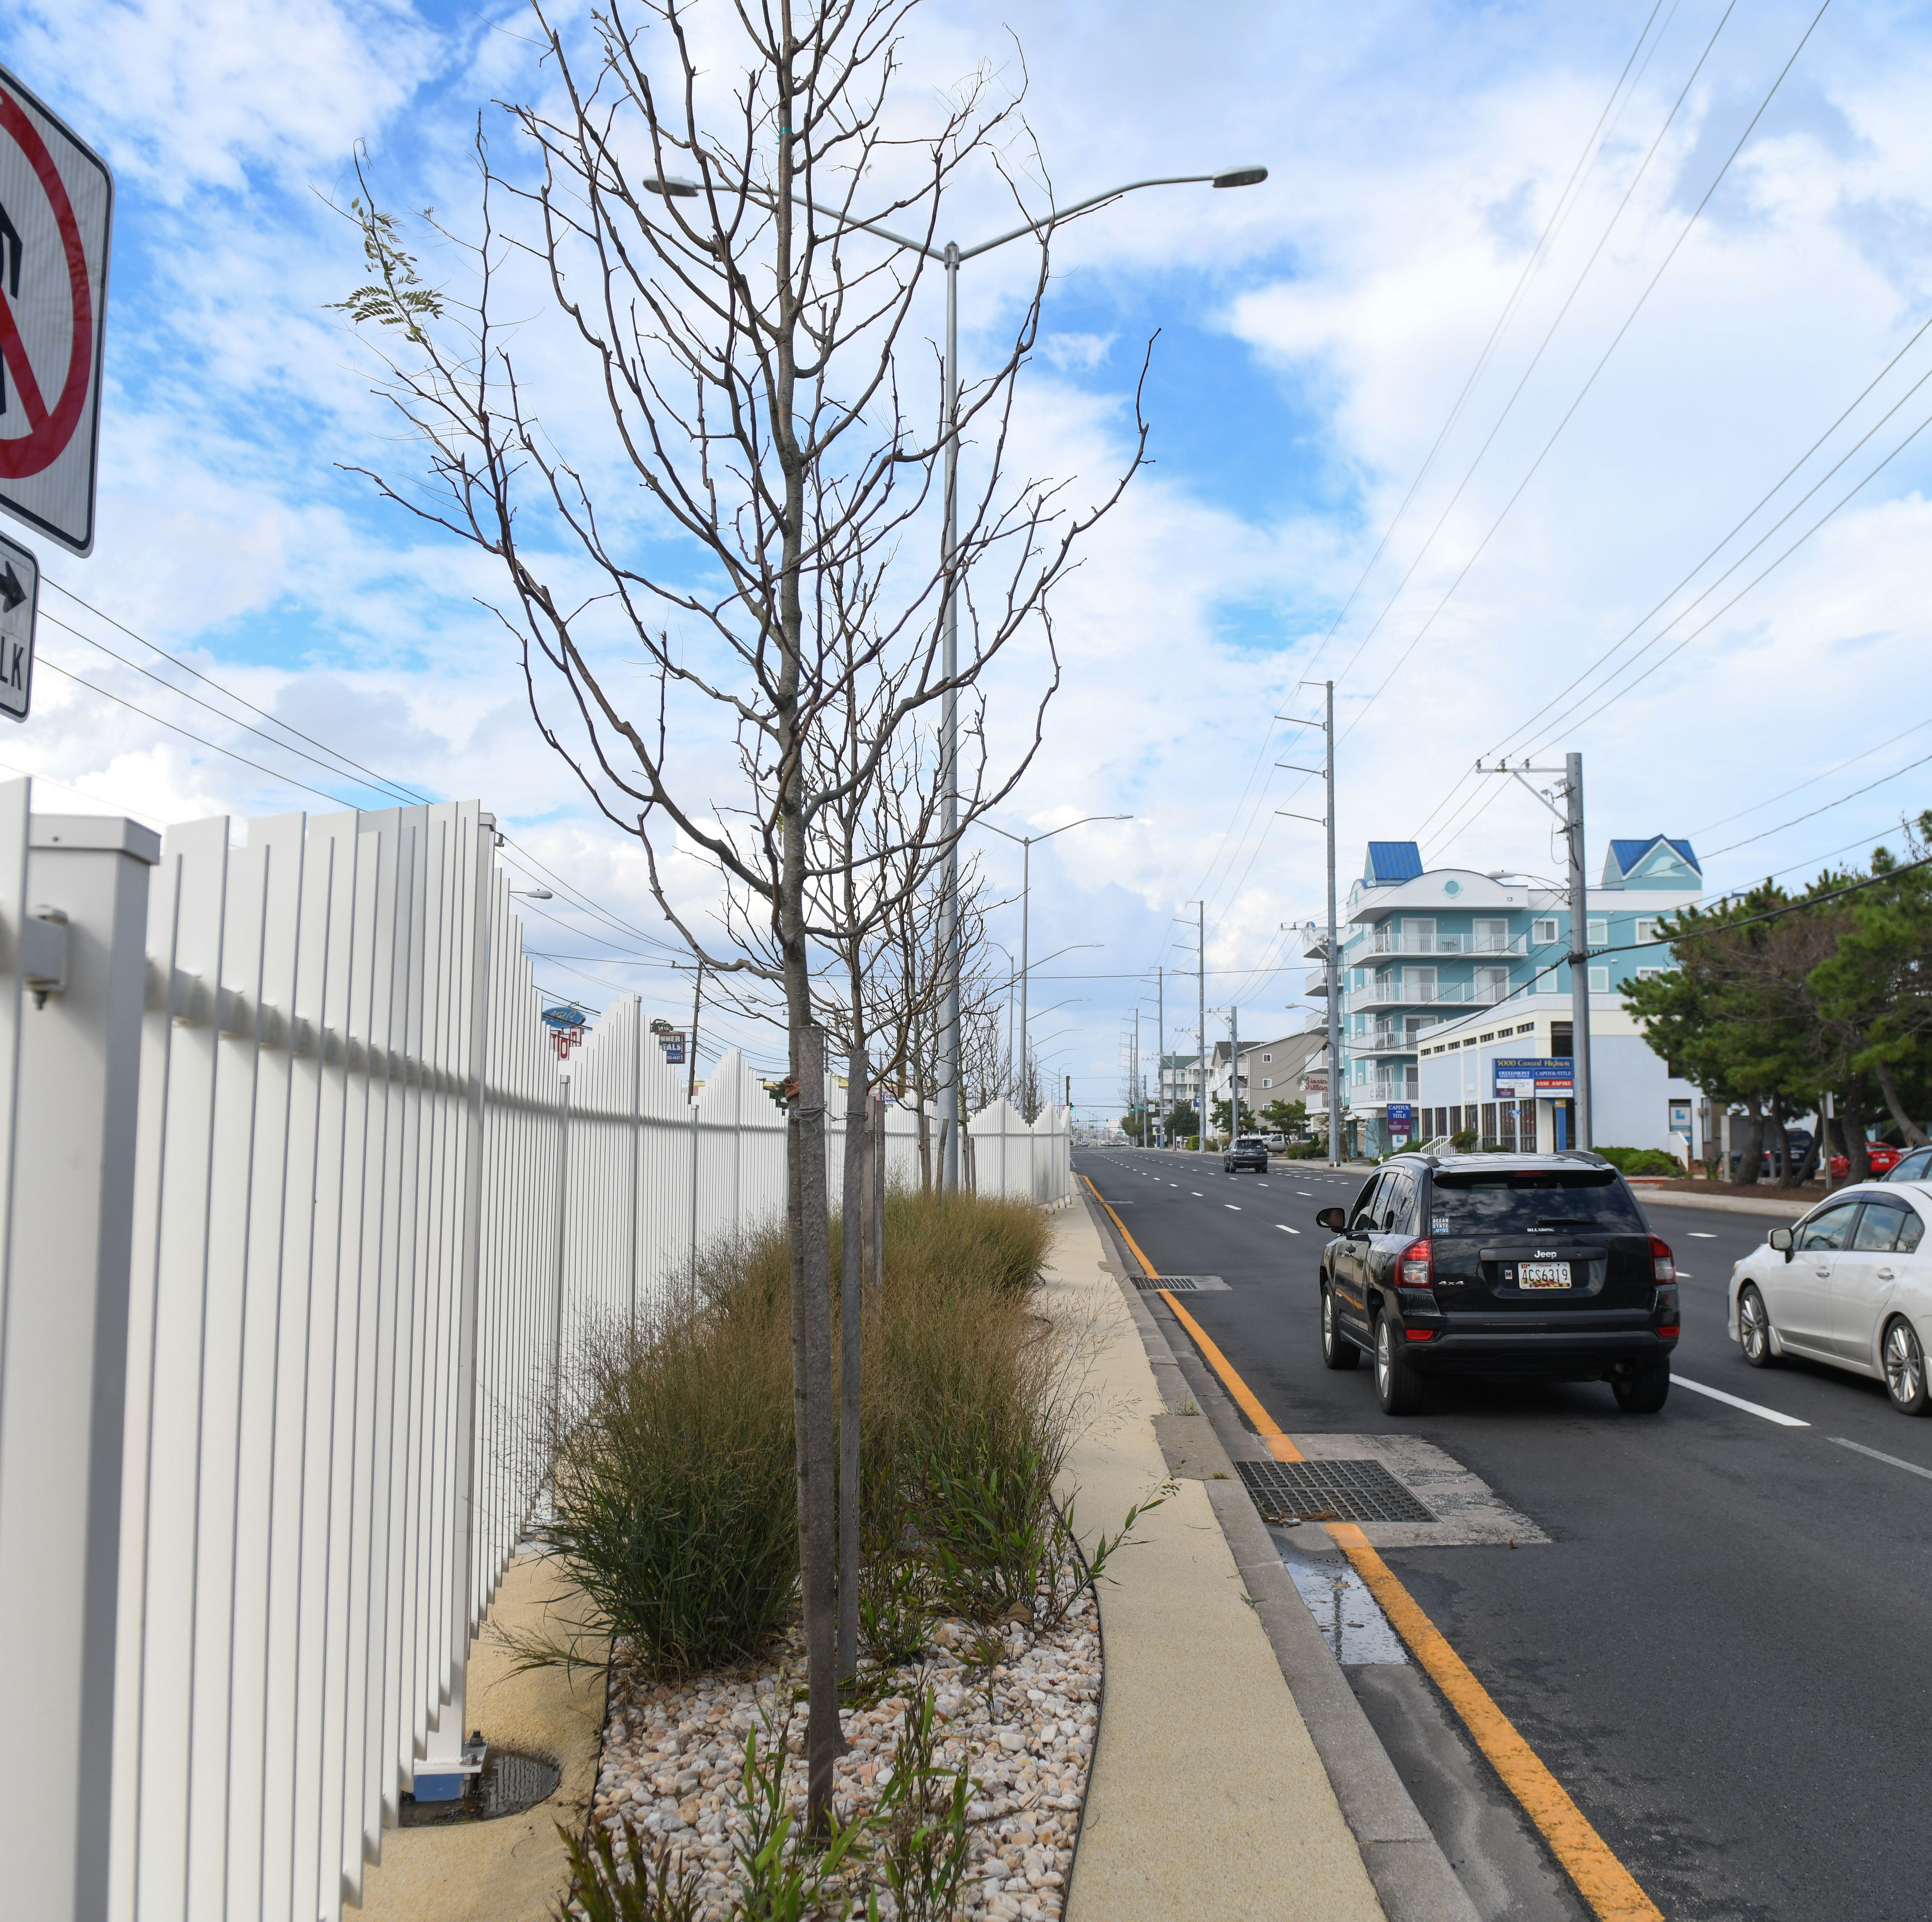 Ocean City median fence: Zero deaths, serious incidents equals successful summer